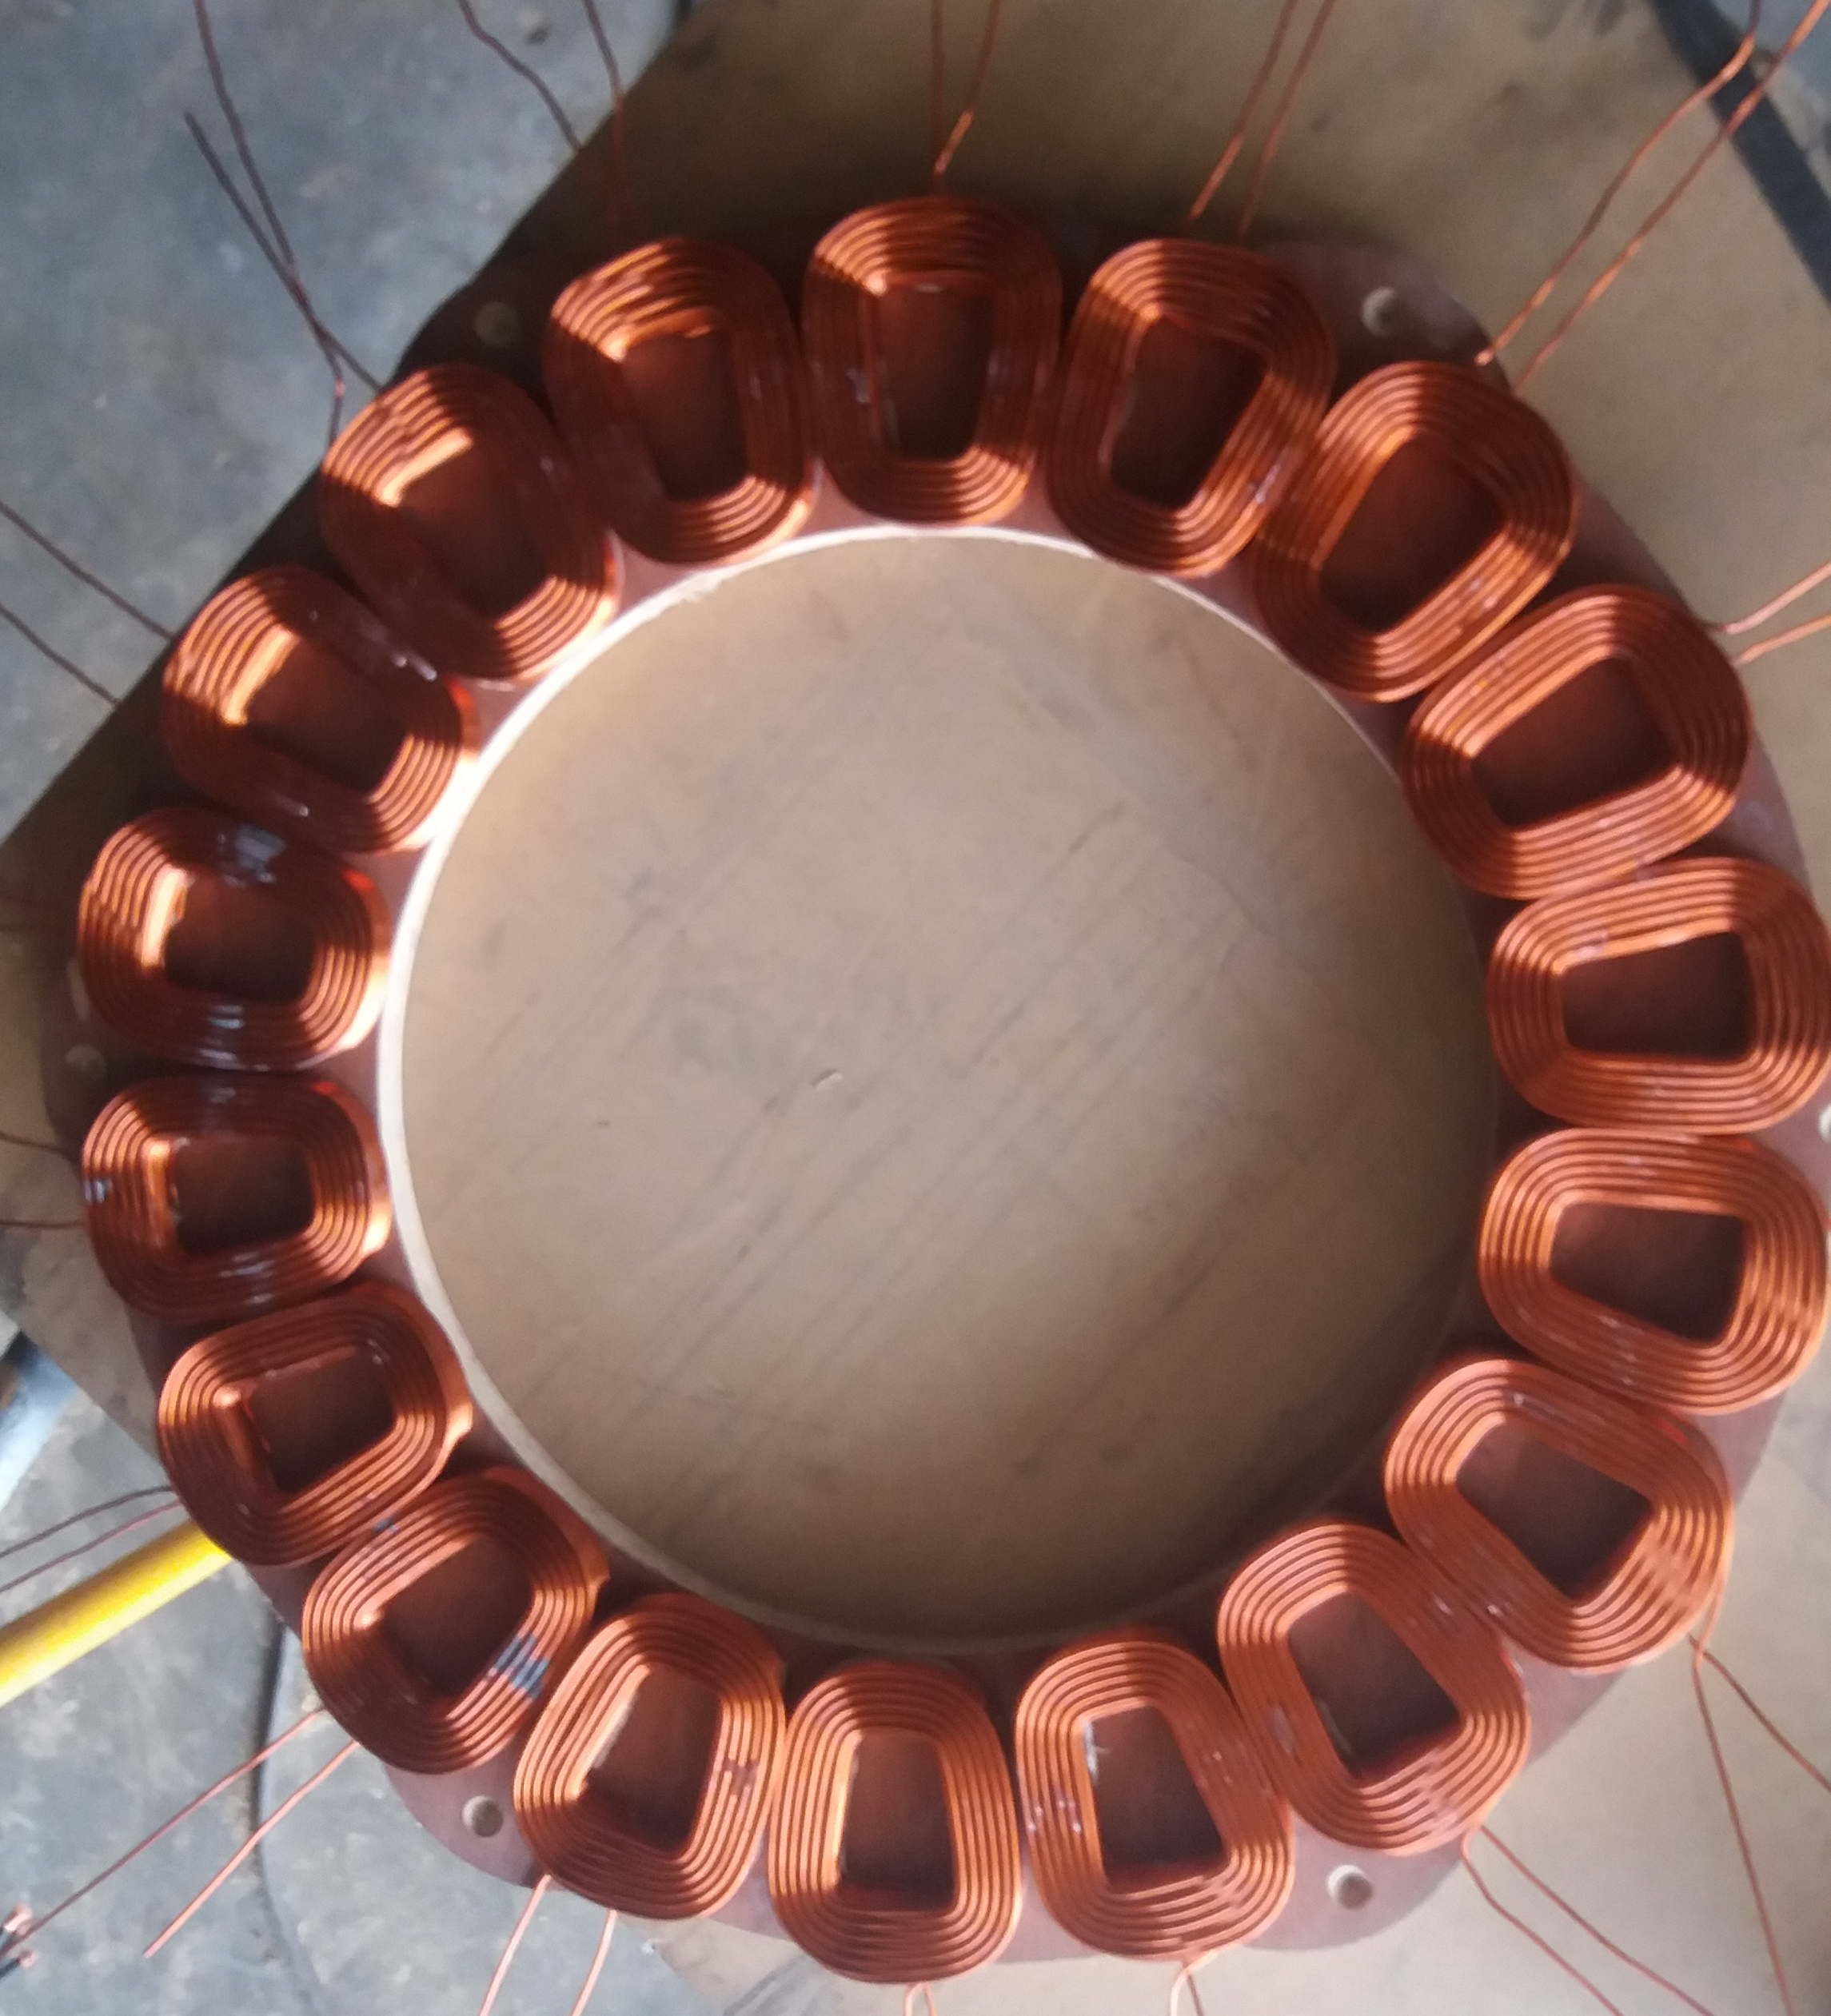 Now it is placed in my personal wind turbine. It is 24 meter High with ...